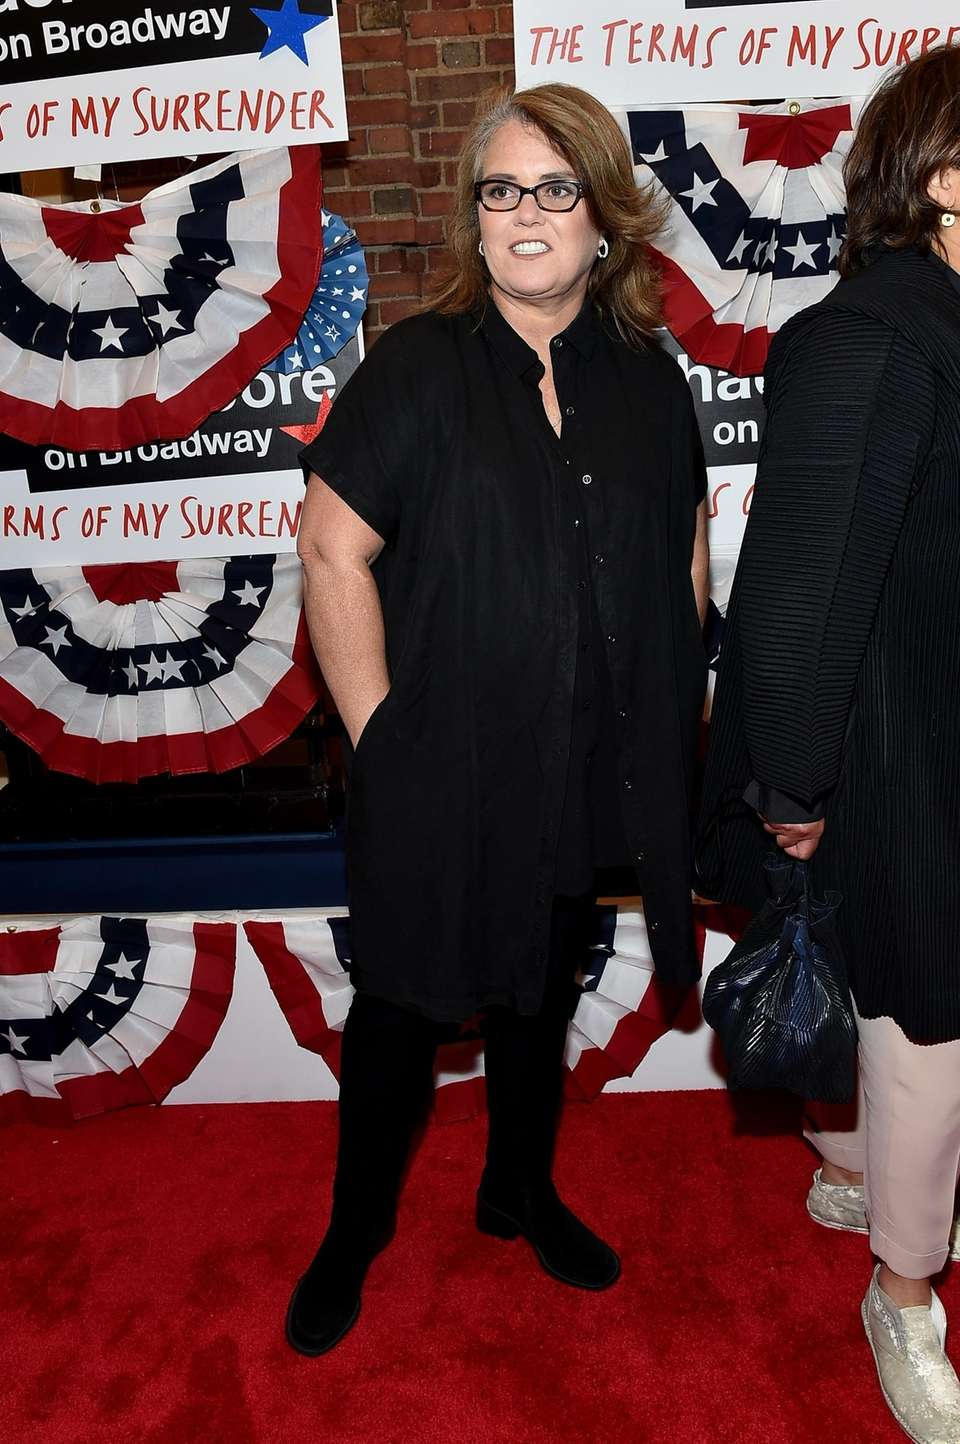 Rosie O'Donnell at the opening night performance of